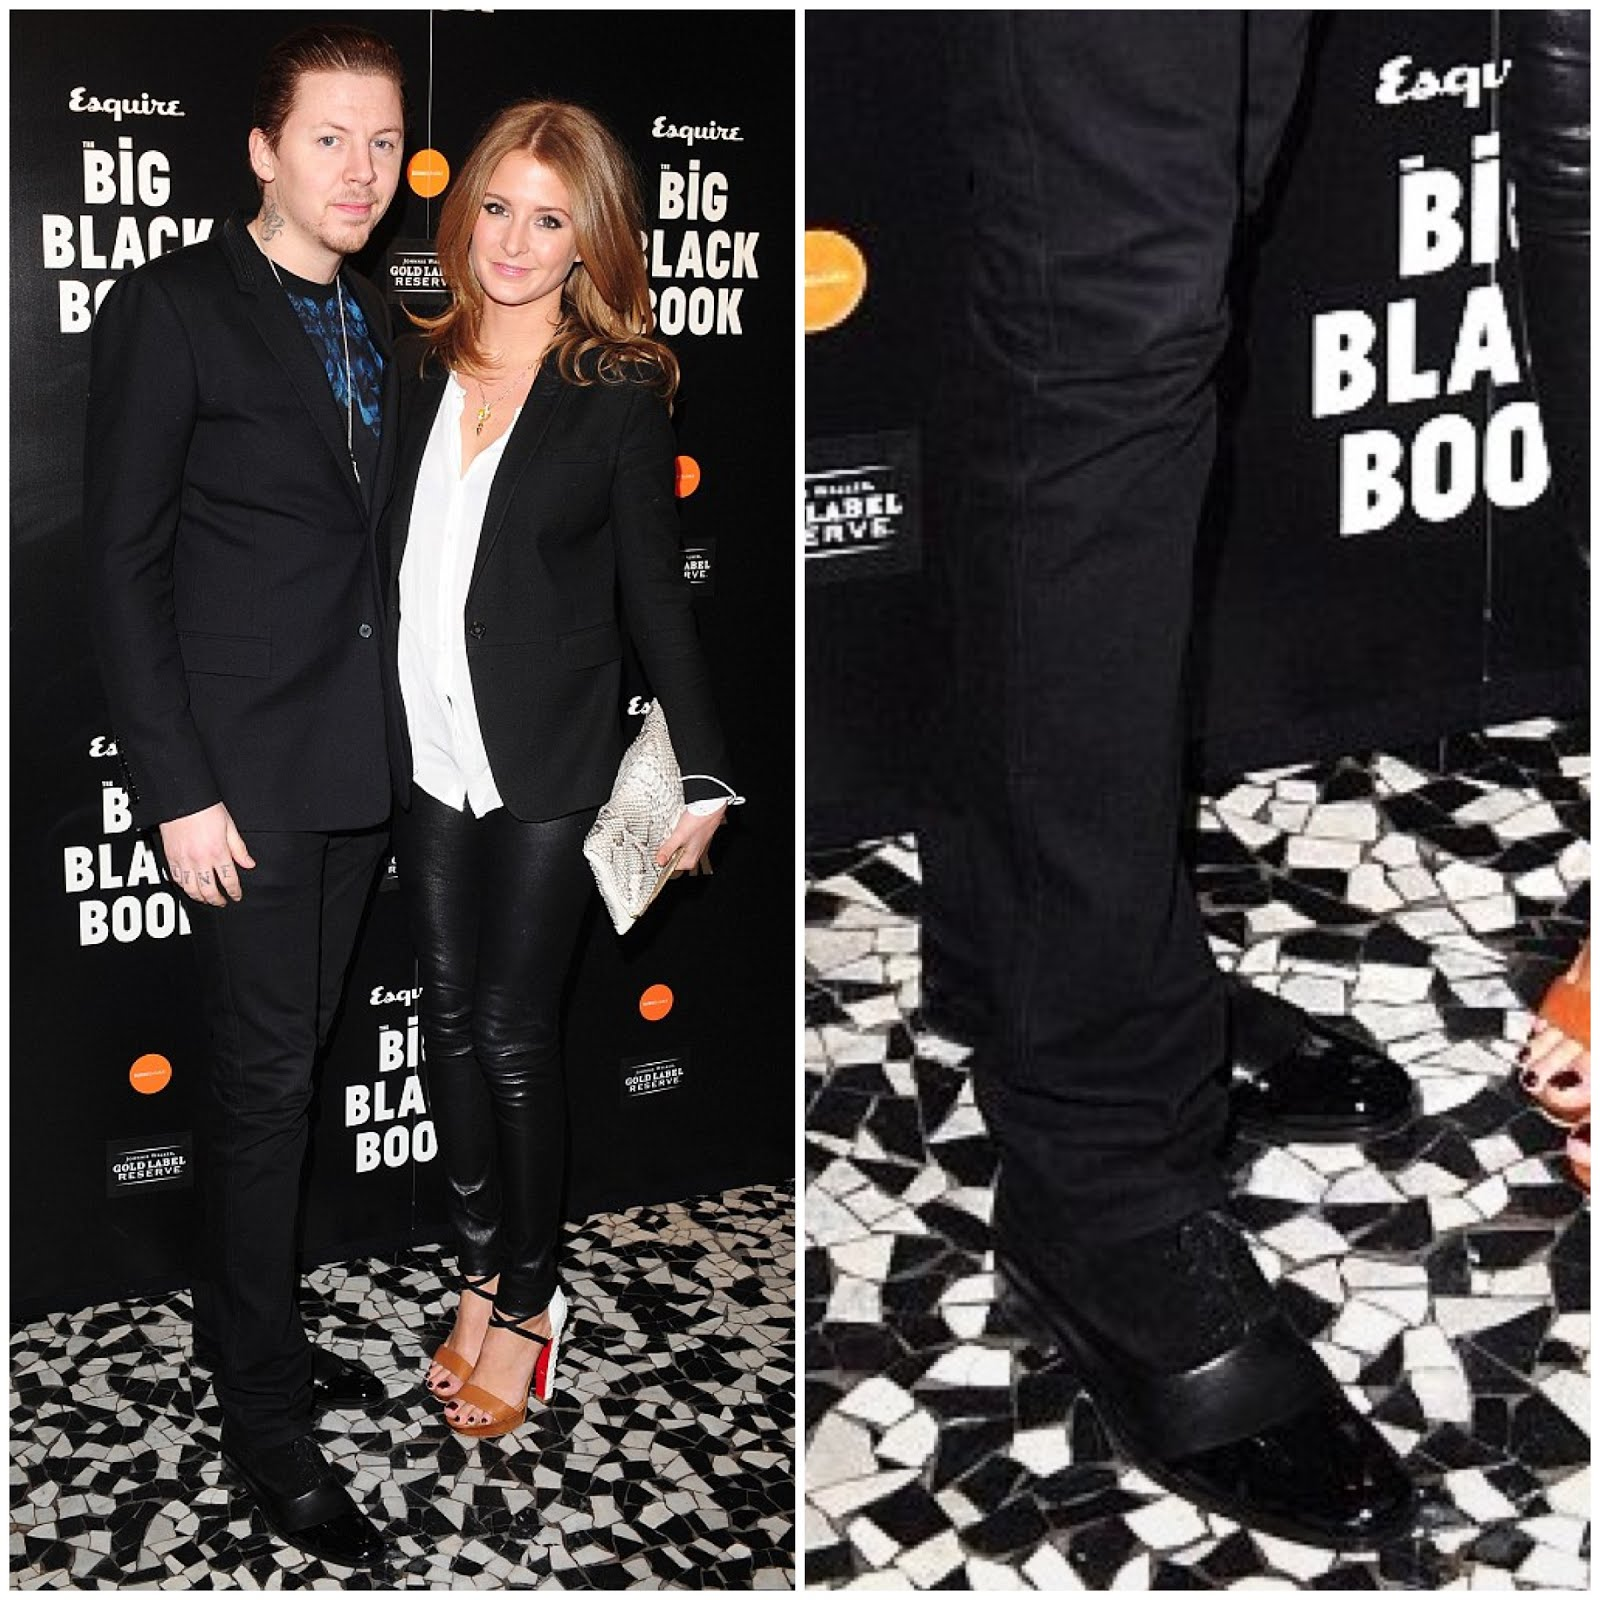 00O00 Menswear Blog Professor Green in Mr Hare Fitzgerald shoes - Esquire UK Big Black Book London launch at Sushi Samba March 2013